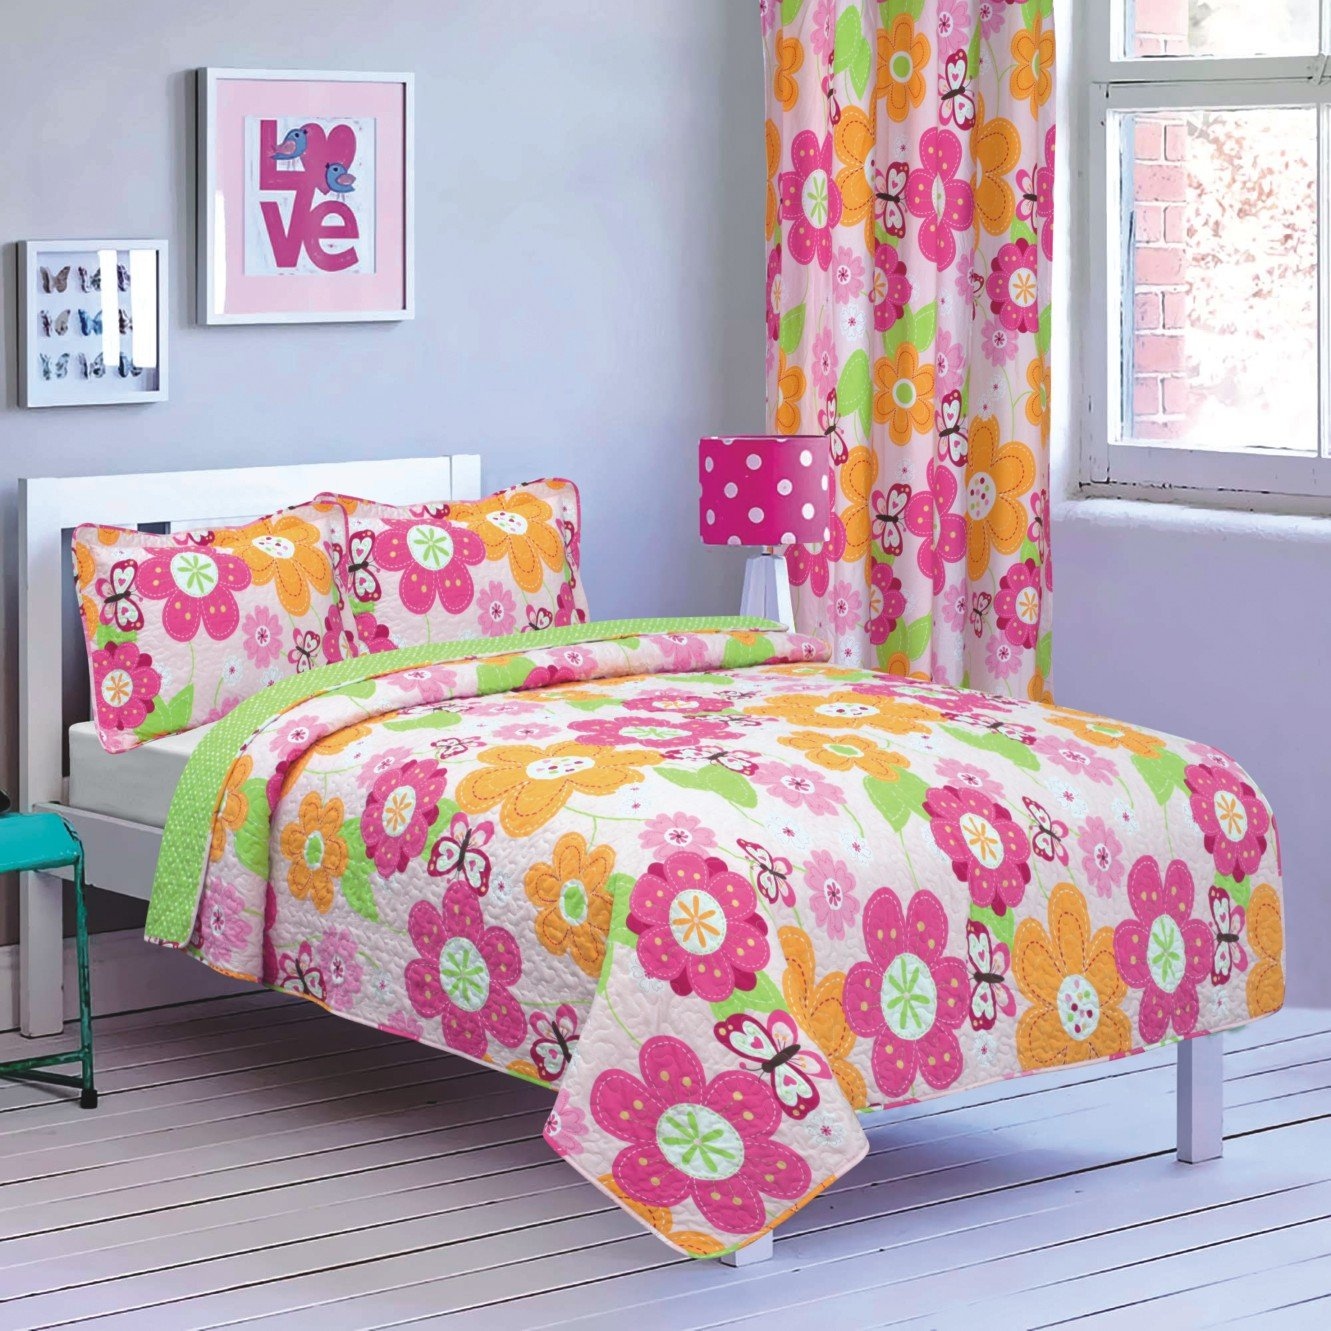 All American Collection New 2pc Printed Modern Bedspread Coverlet Set Twin Bedspread, Pink/Green Floral